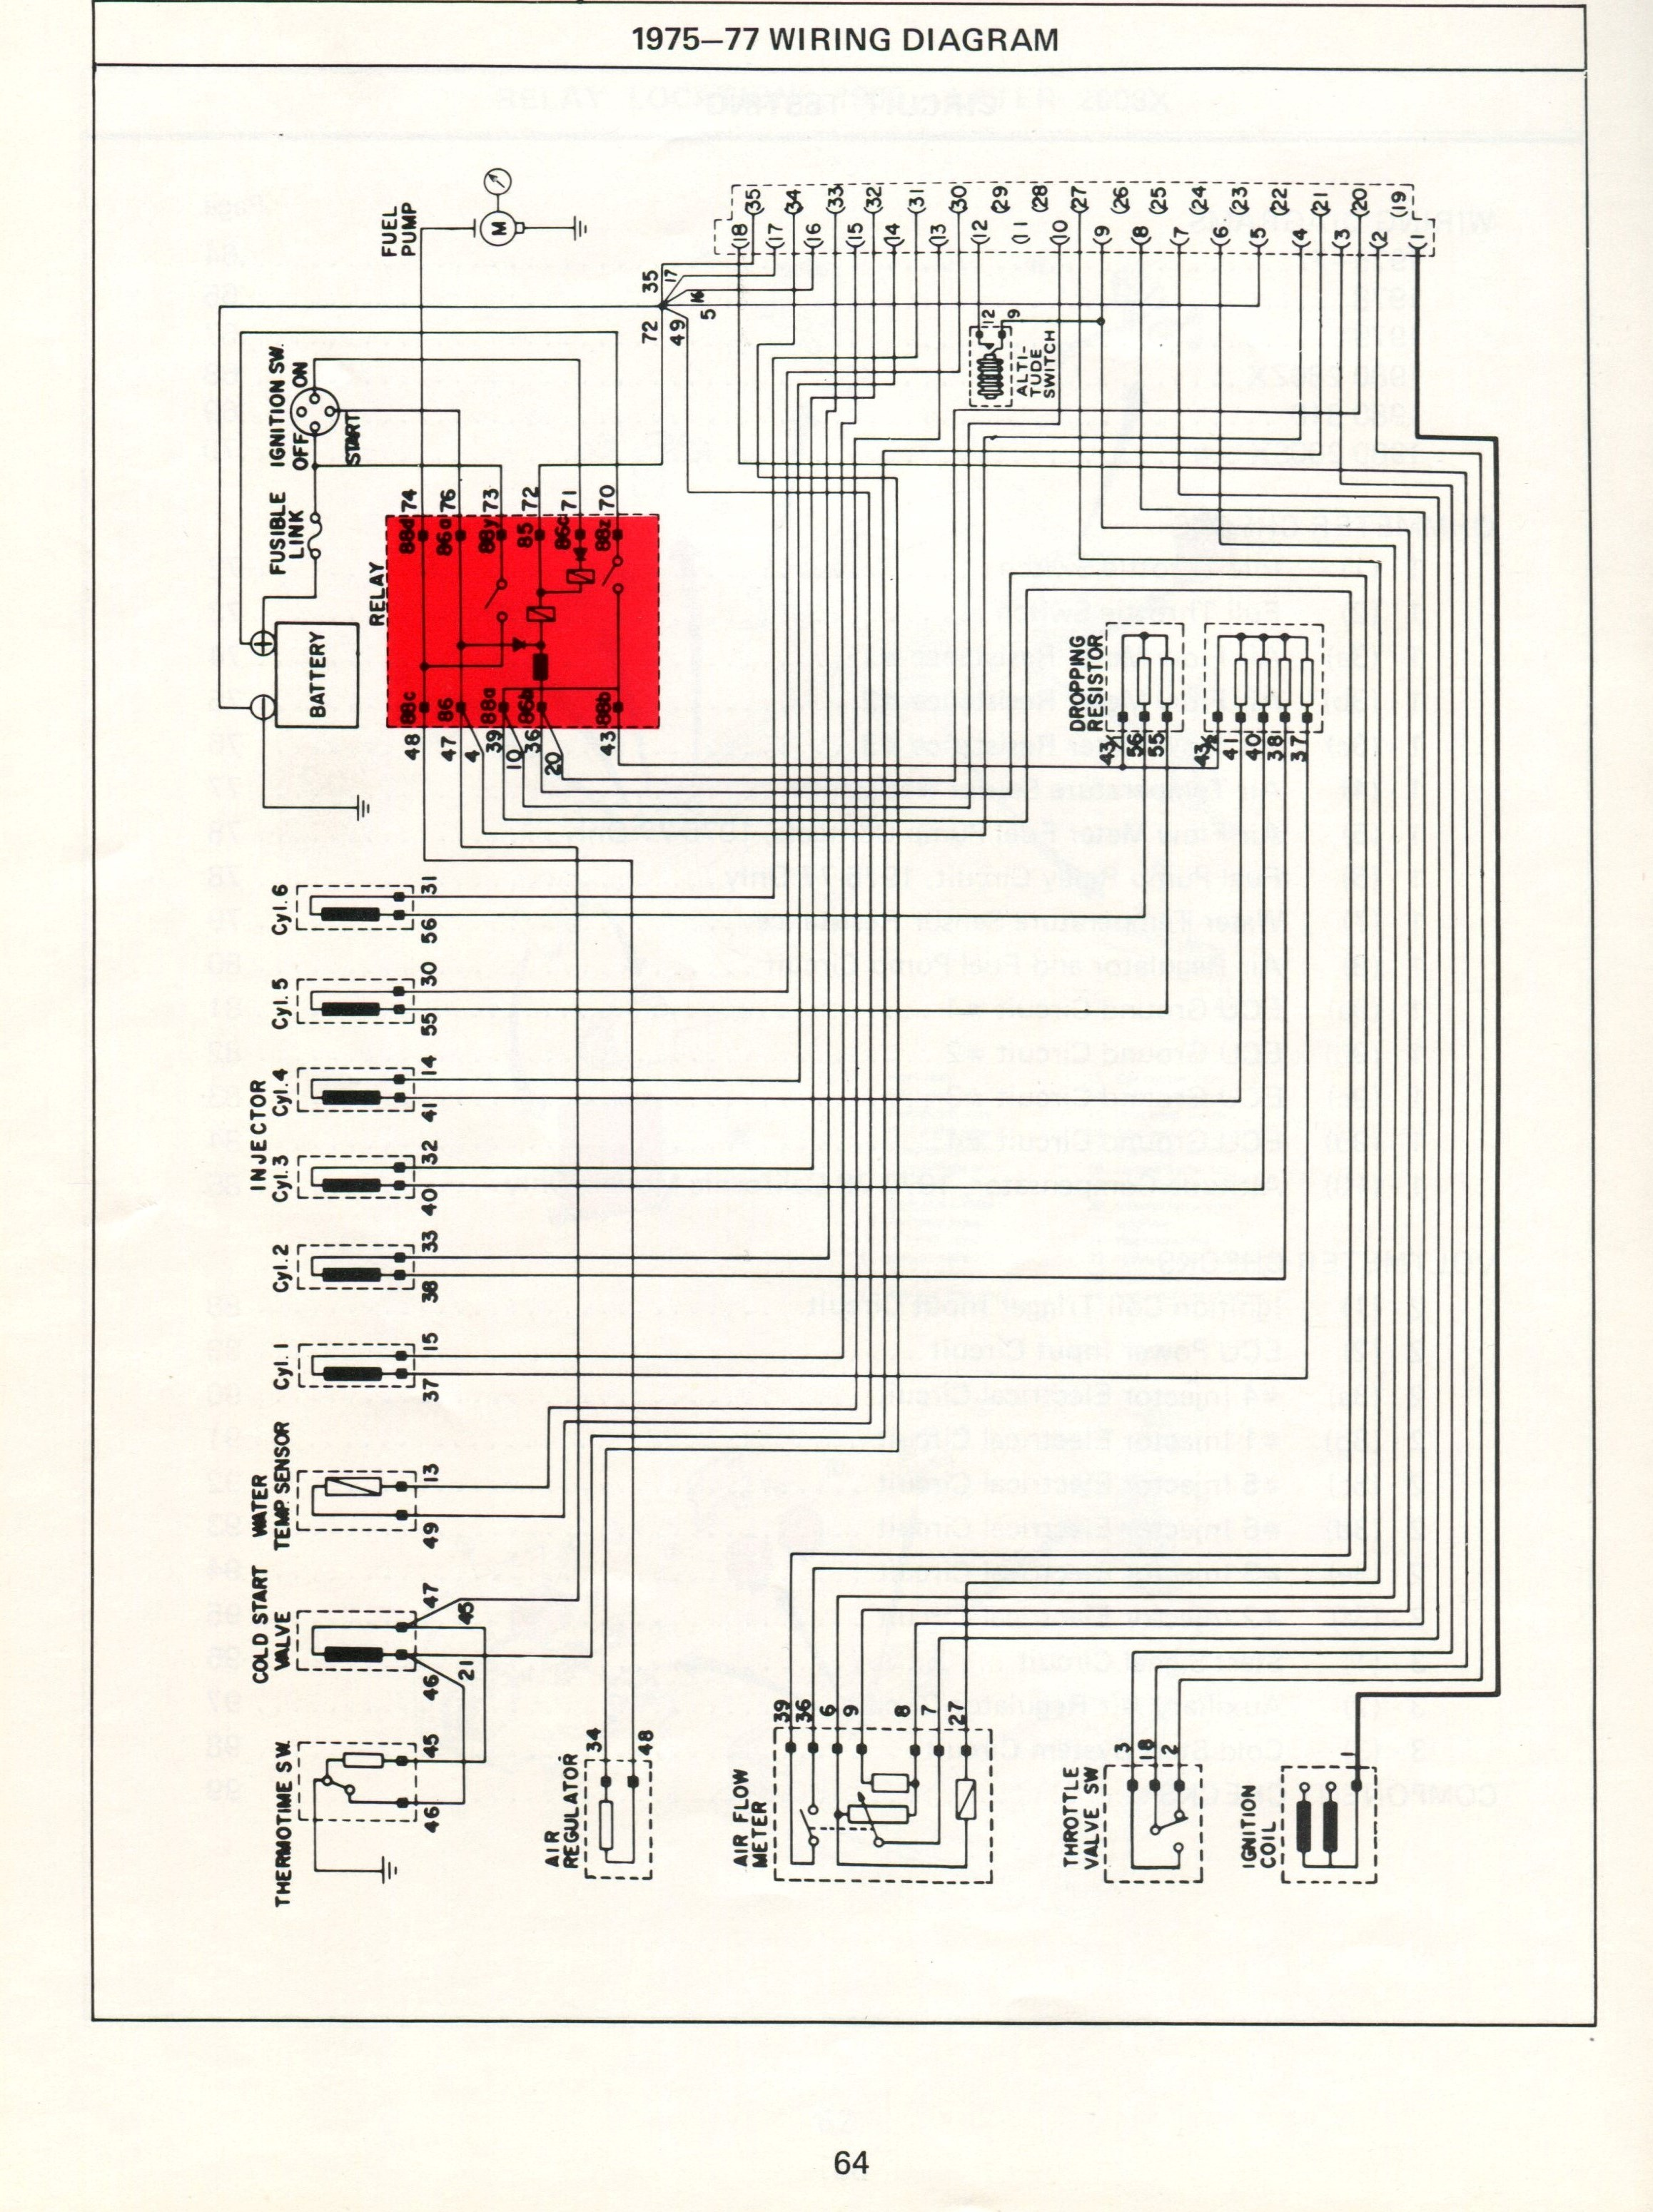 datsun_fuel_injection 69 datsun electronic fuel injection wiring diagrams datsun 280z wiring diagram at soozxer.org